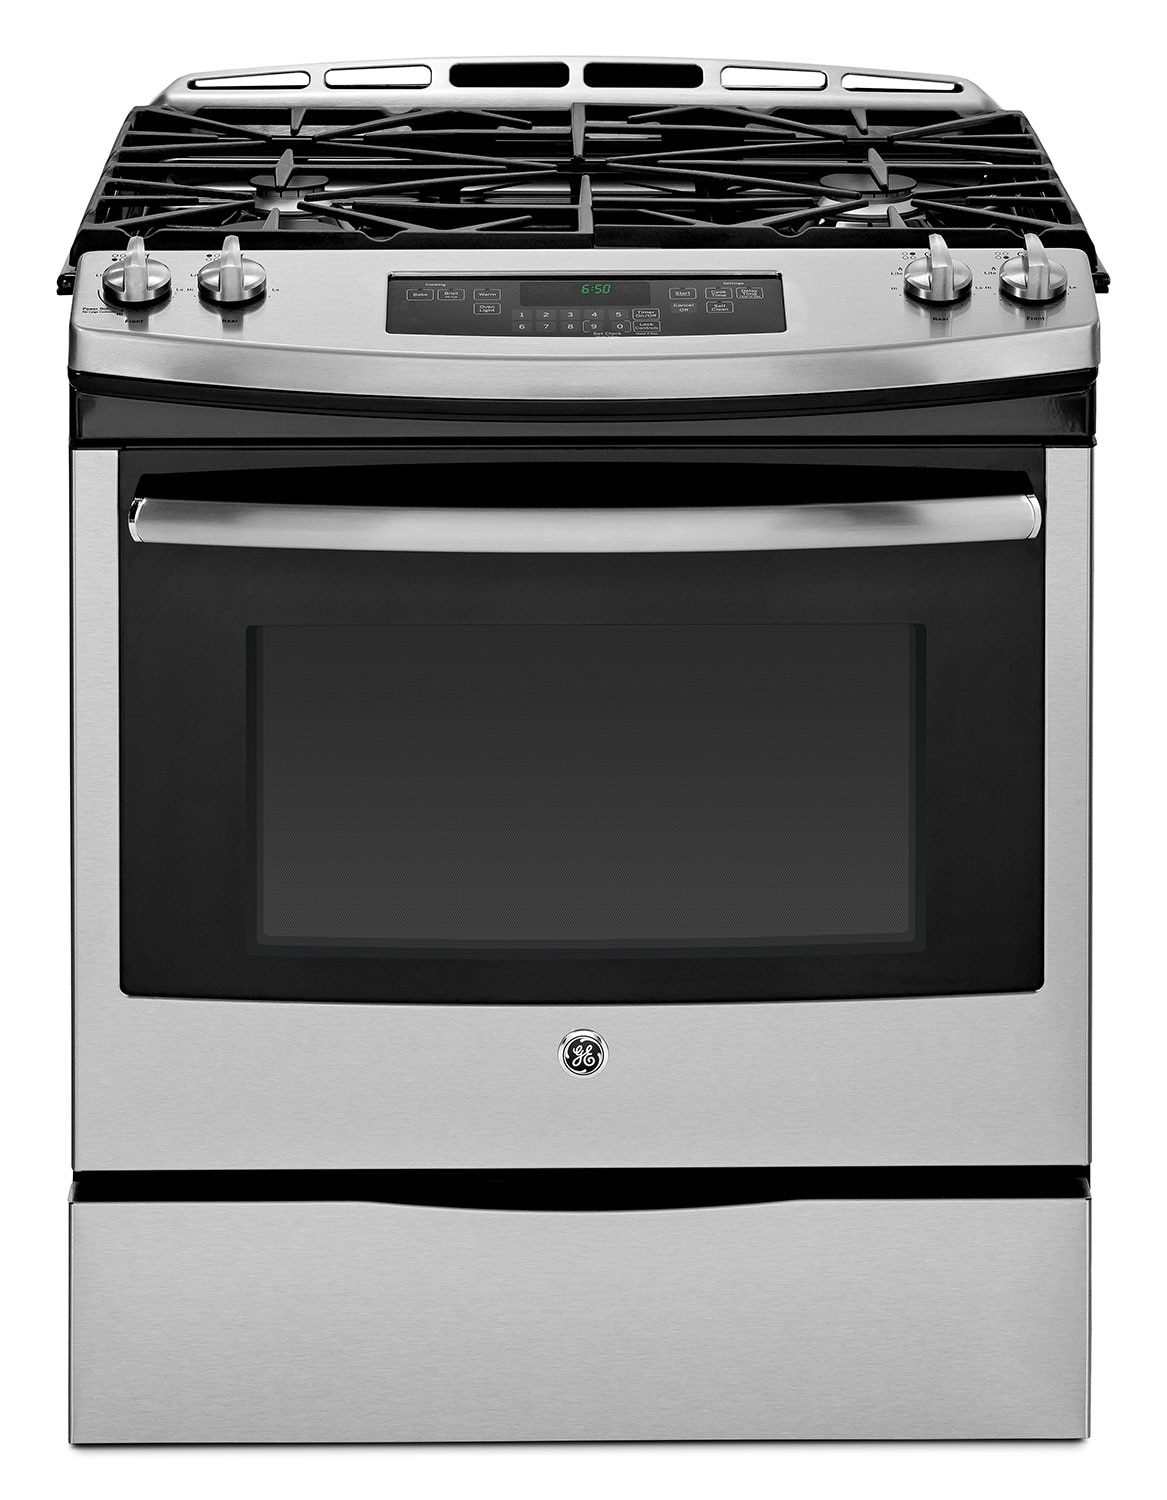 GE 5.6 Cu. Ft. Slide-In Gas Range - Stainless Steel